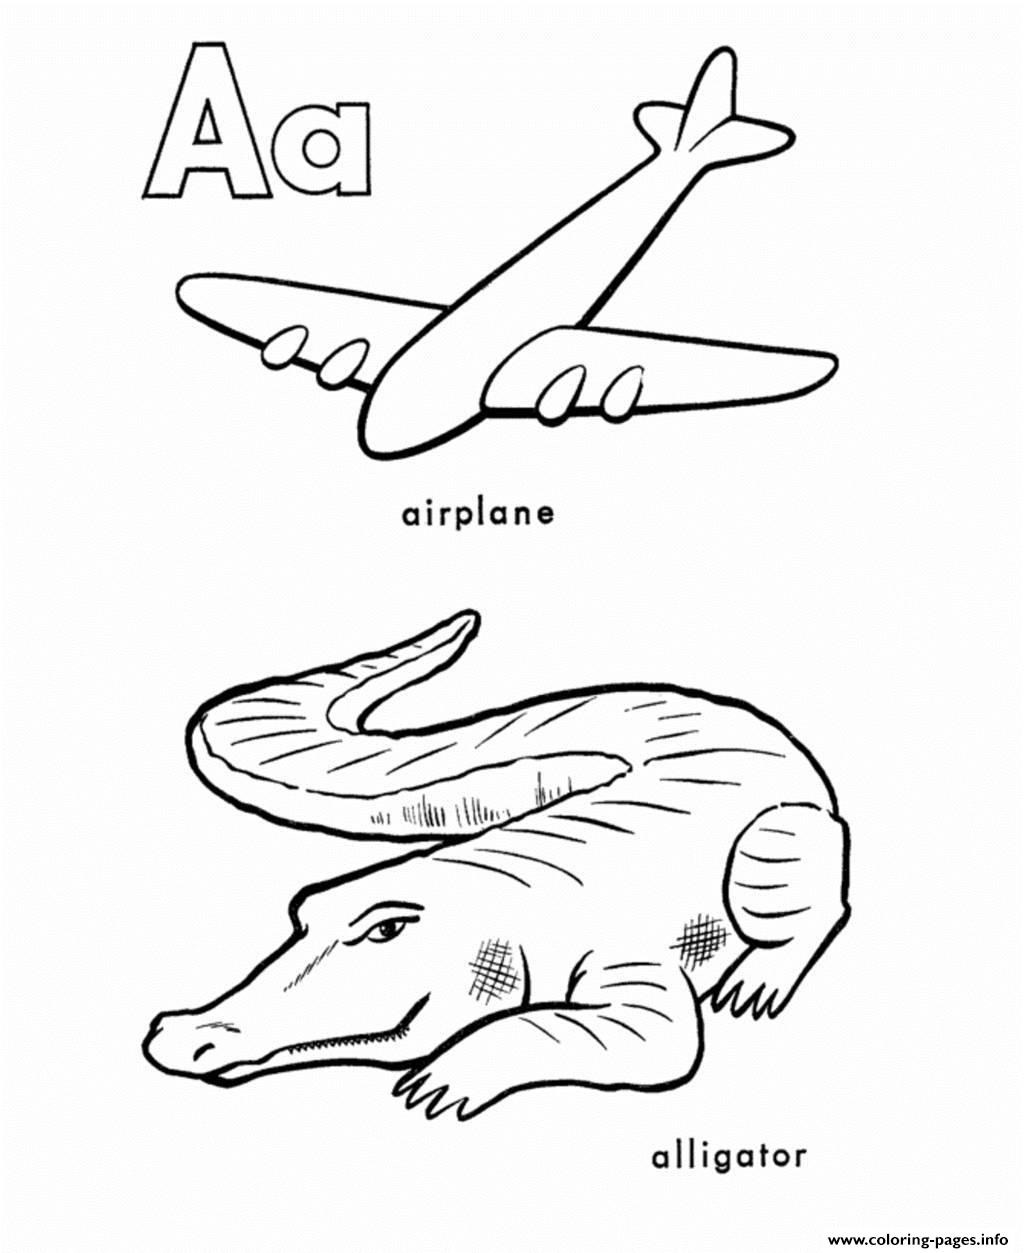 Alphabet S Printable A Is For Airplane